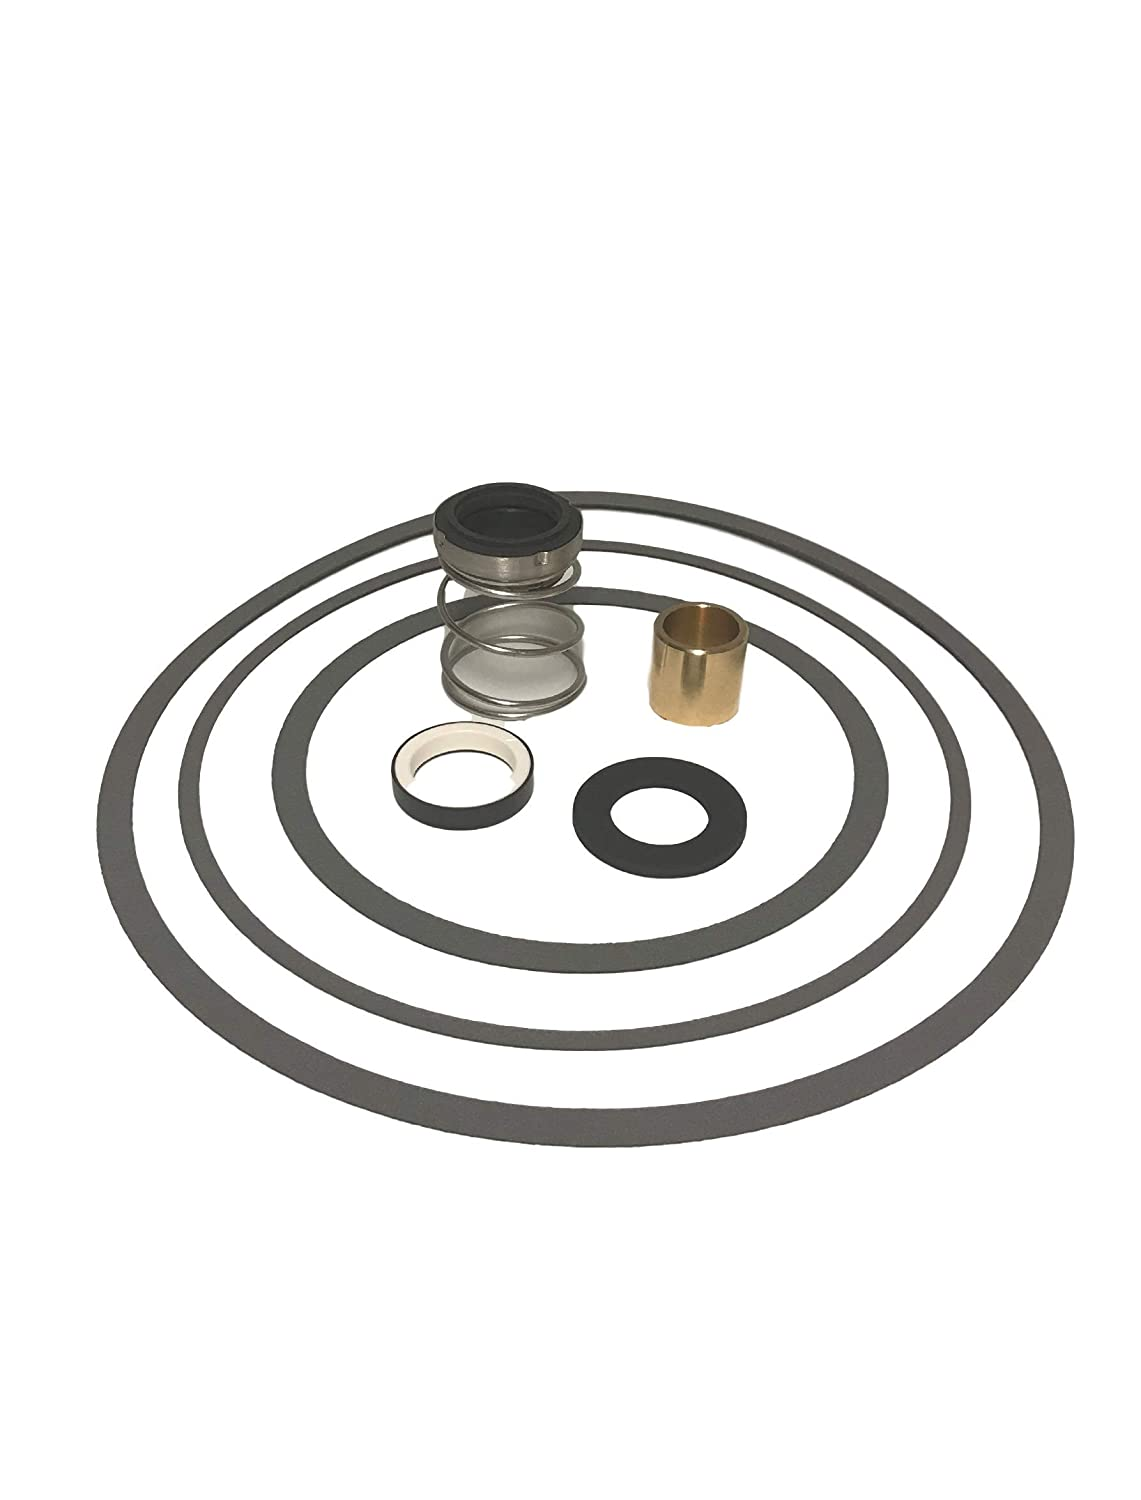 Mesco Corp Replacement kit for 185140L All items free shipping Gossett Max 88% OFF Bell 186862LF